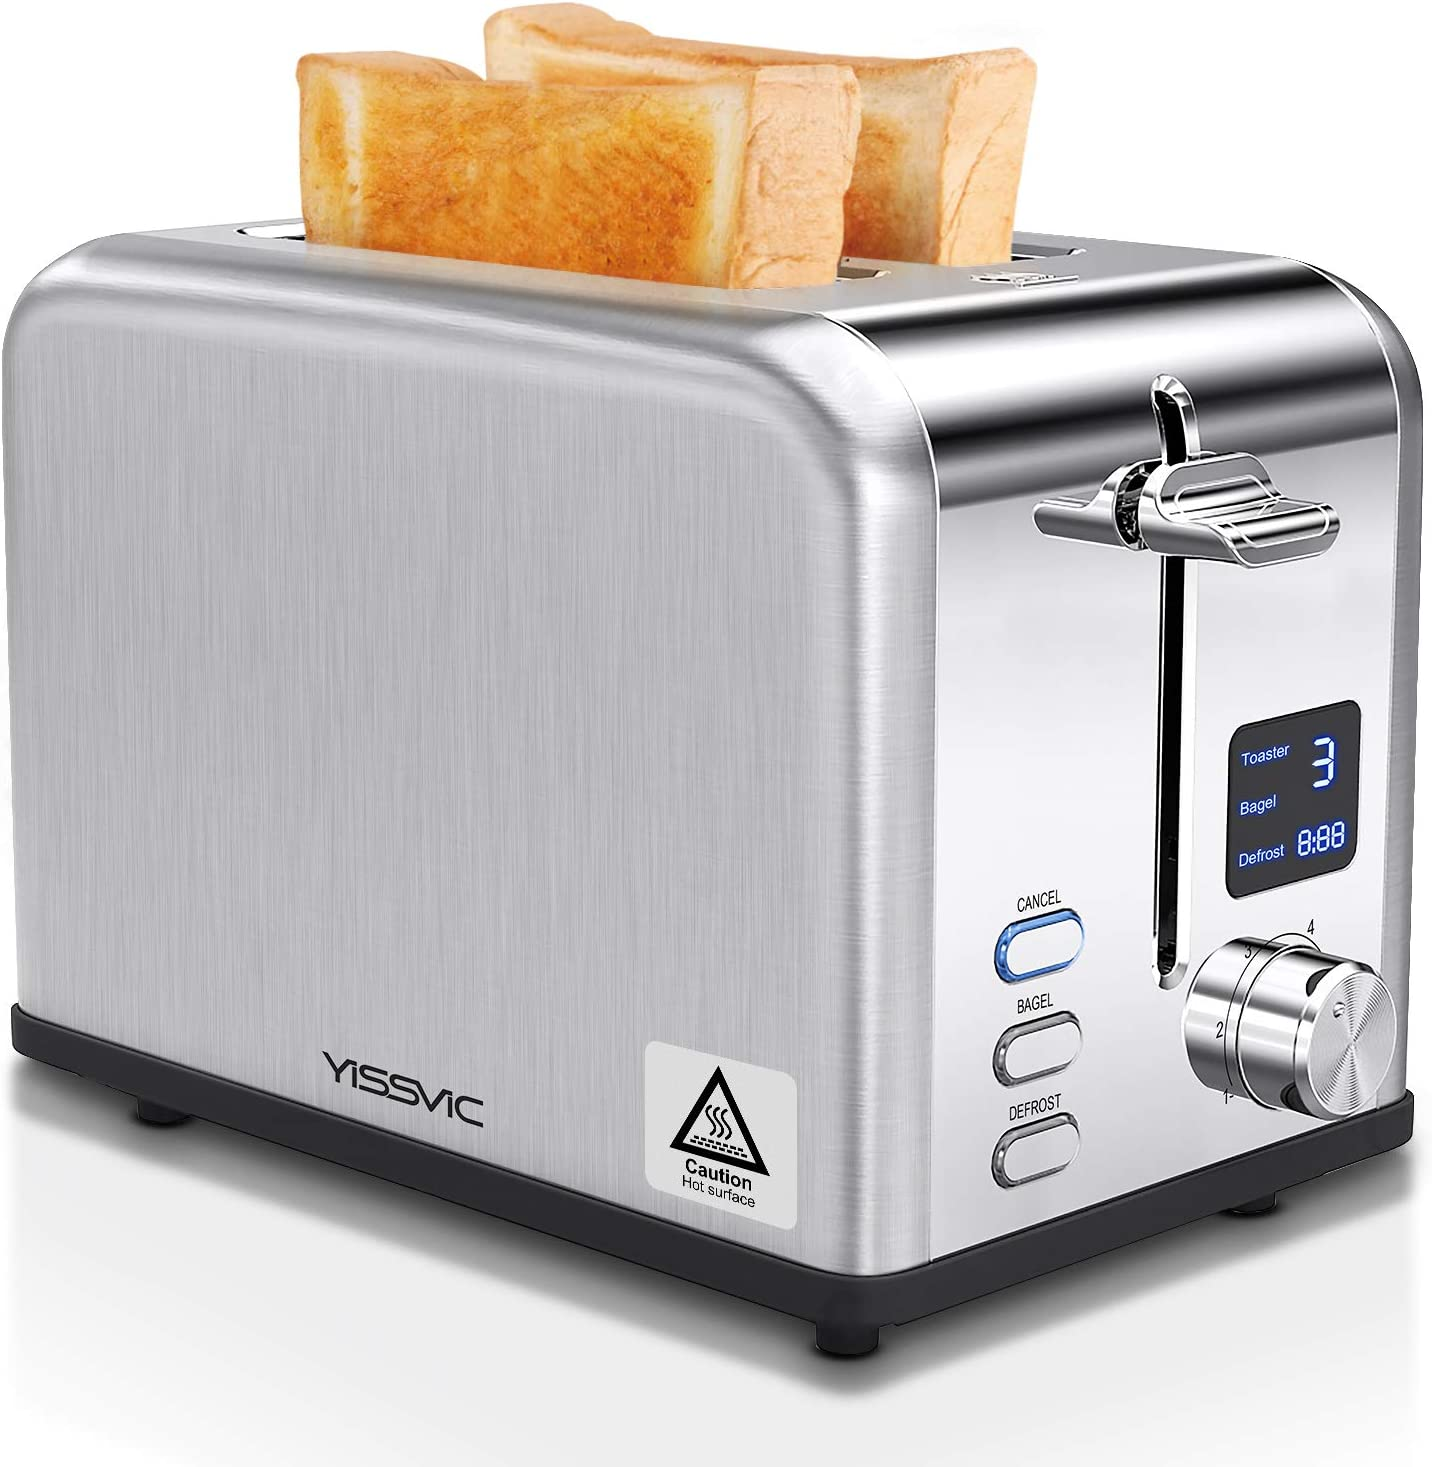 YISSVIC Toaster 2 Slice Extra Wide Slot Toasters 3 Functions Digital Display Bread Toaster with 6 Browning Settings and Removable Crumb Tray